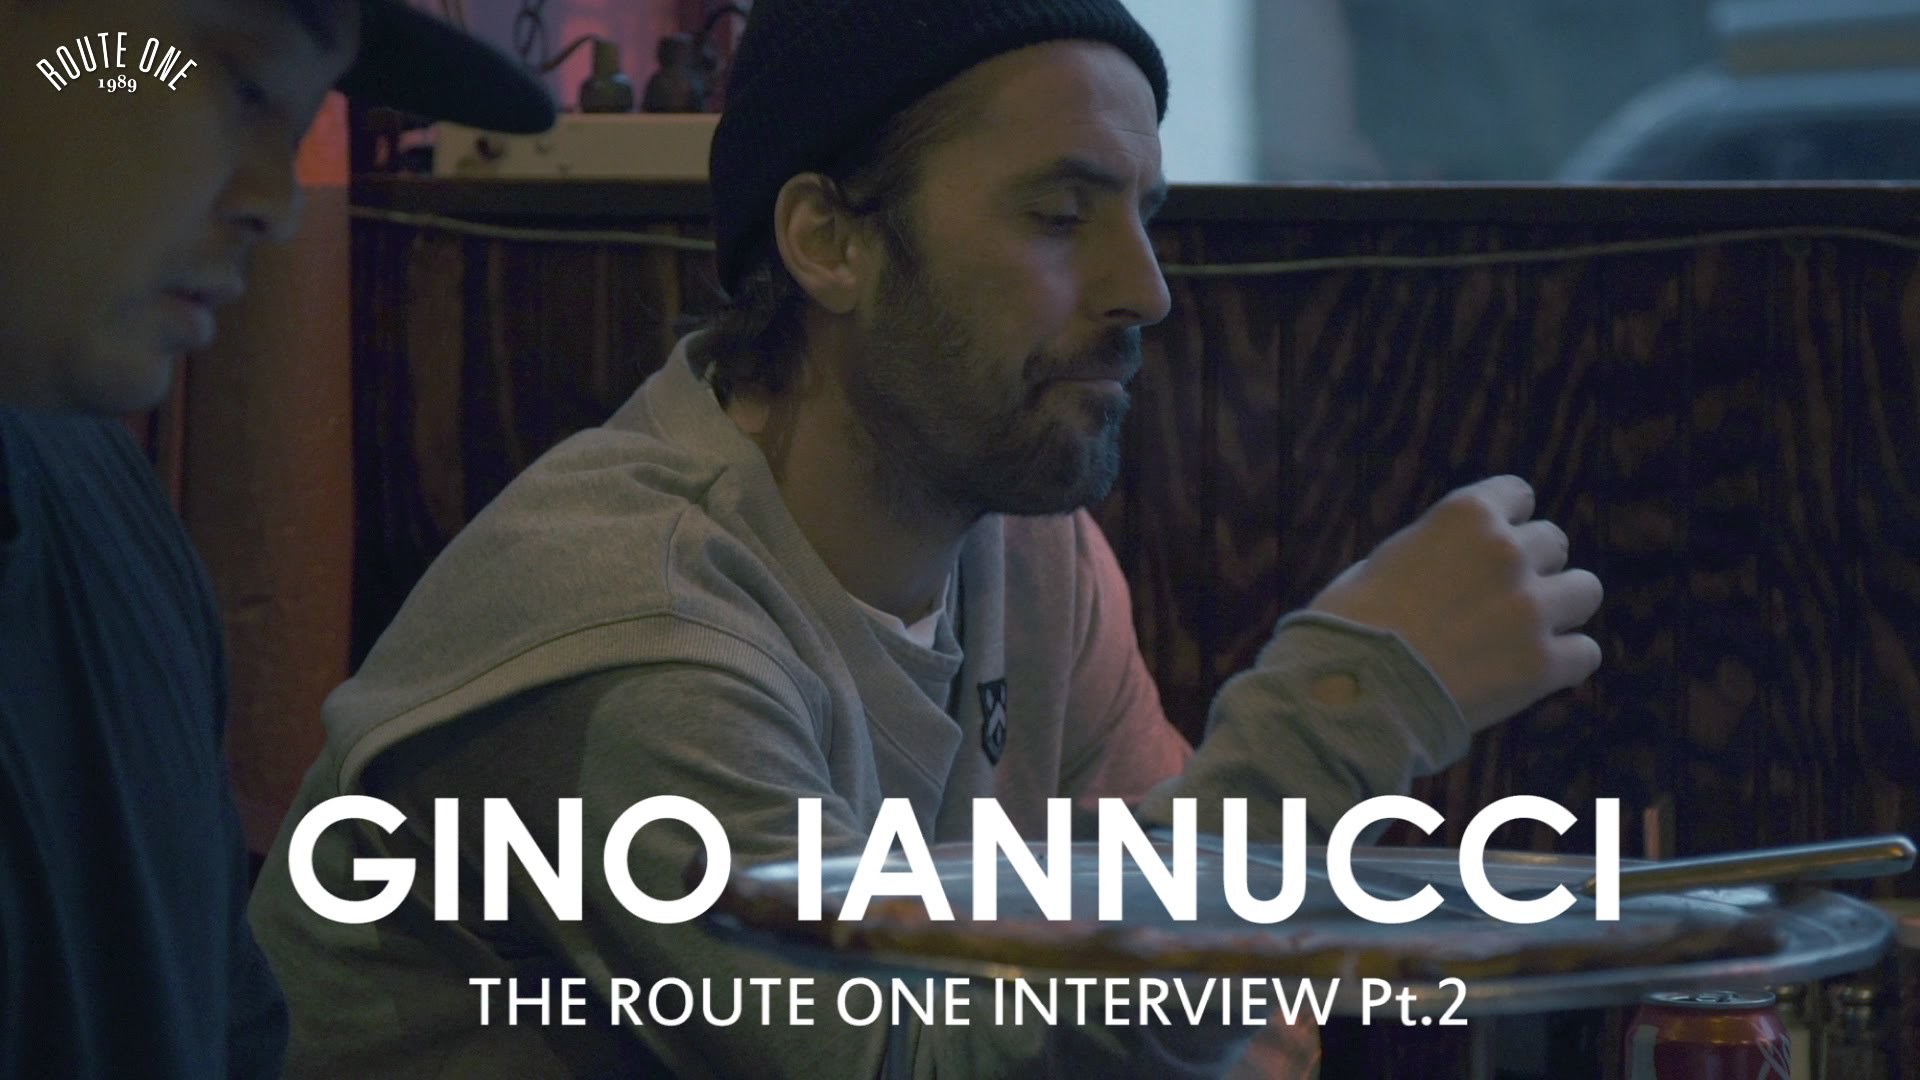 Interview: Gino Iannucci via Route One – Pt2 (2015)